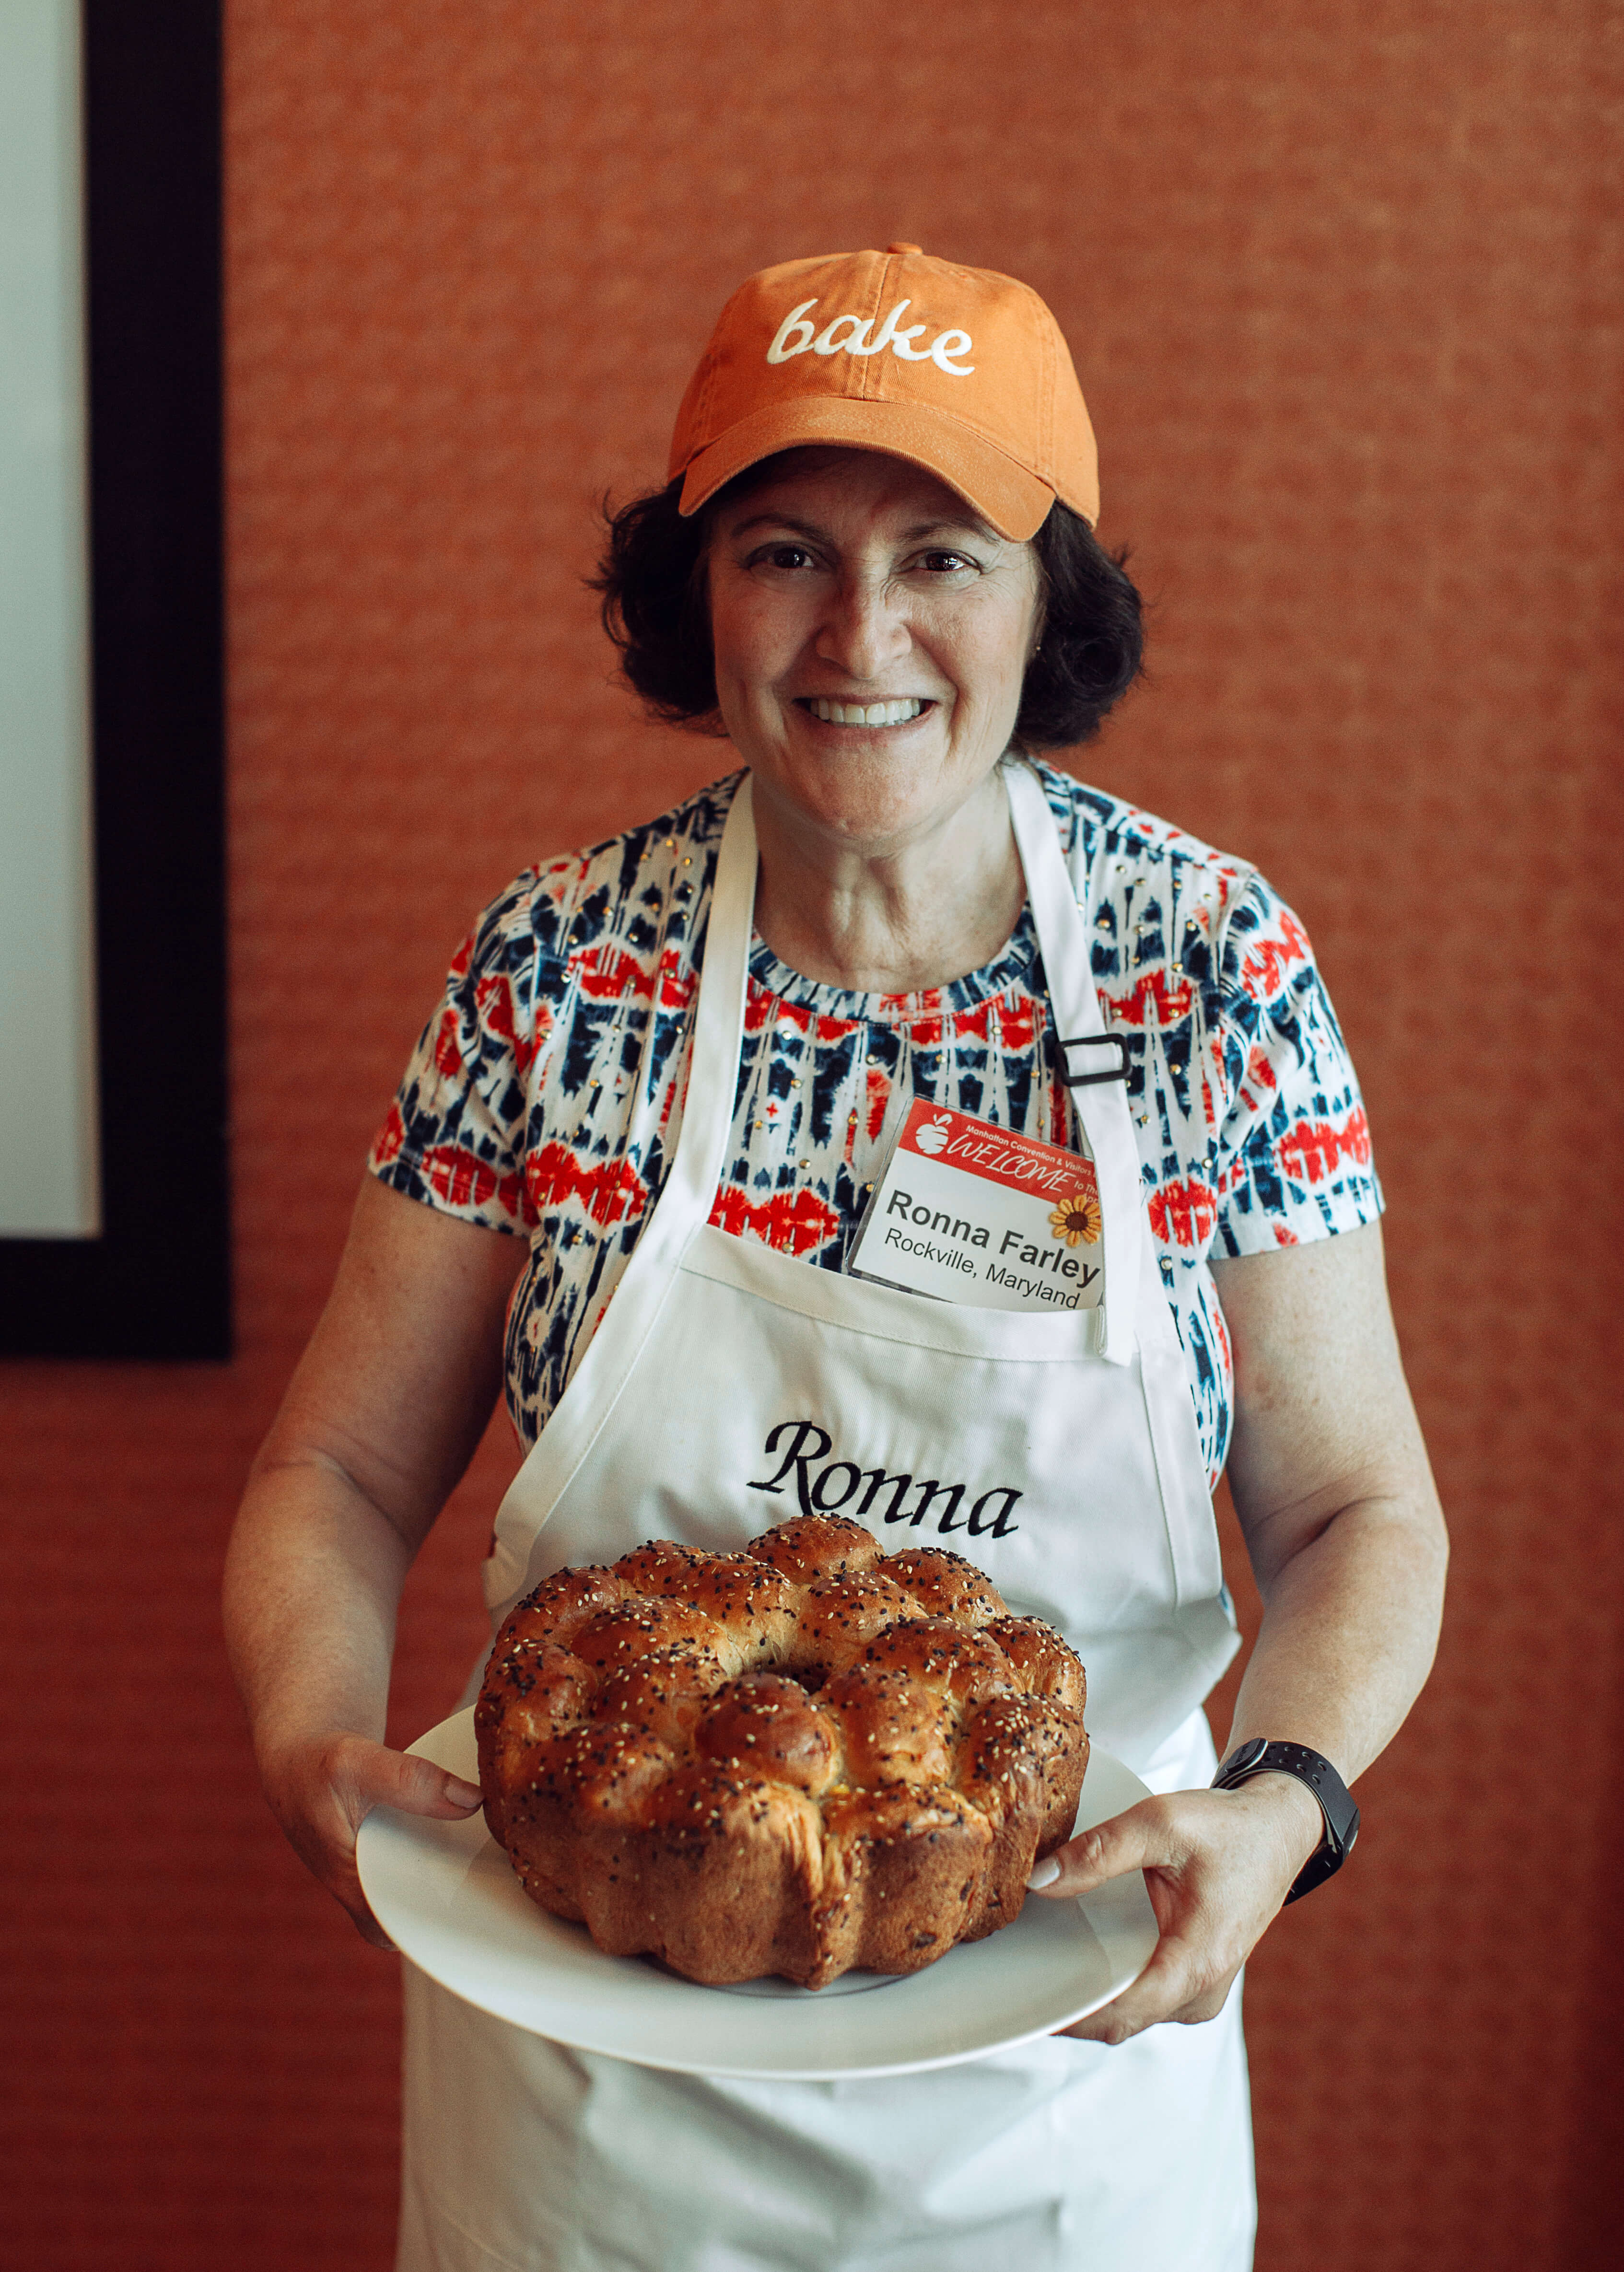 2017 National Festival of Breads Champion